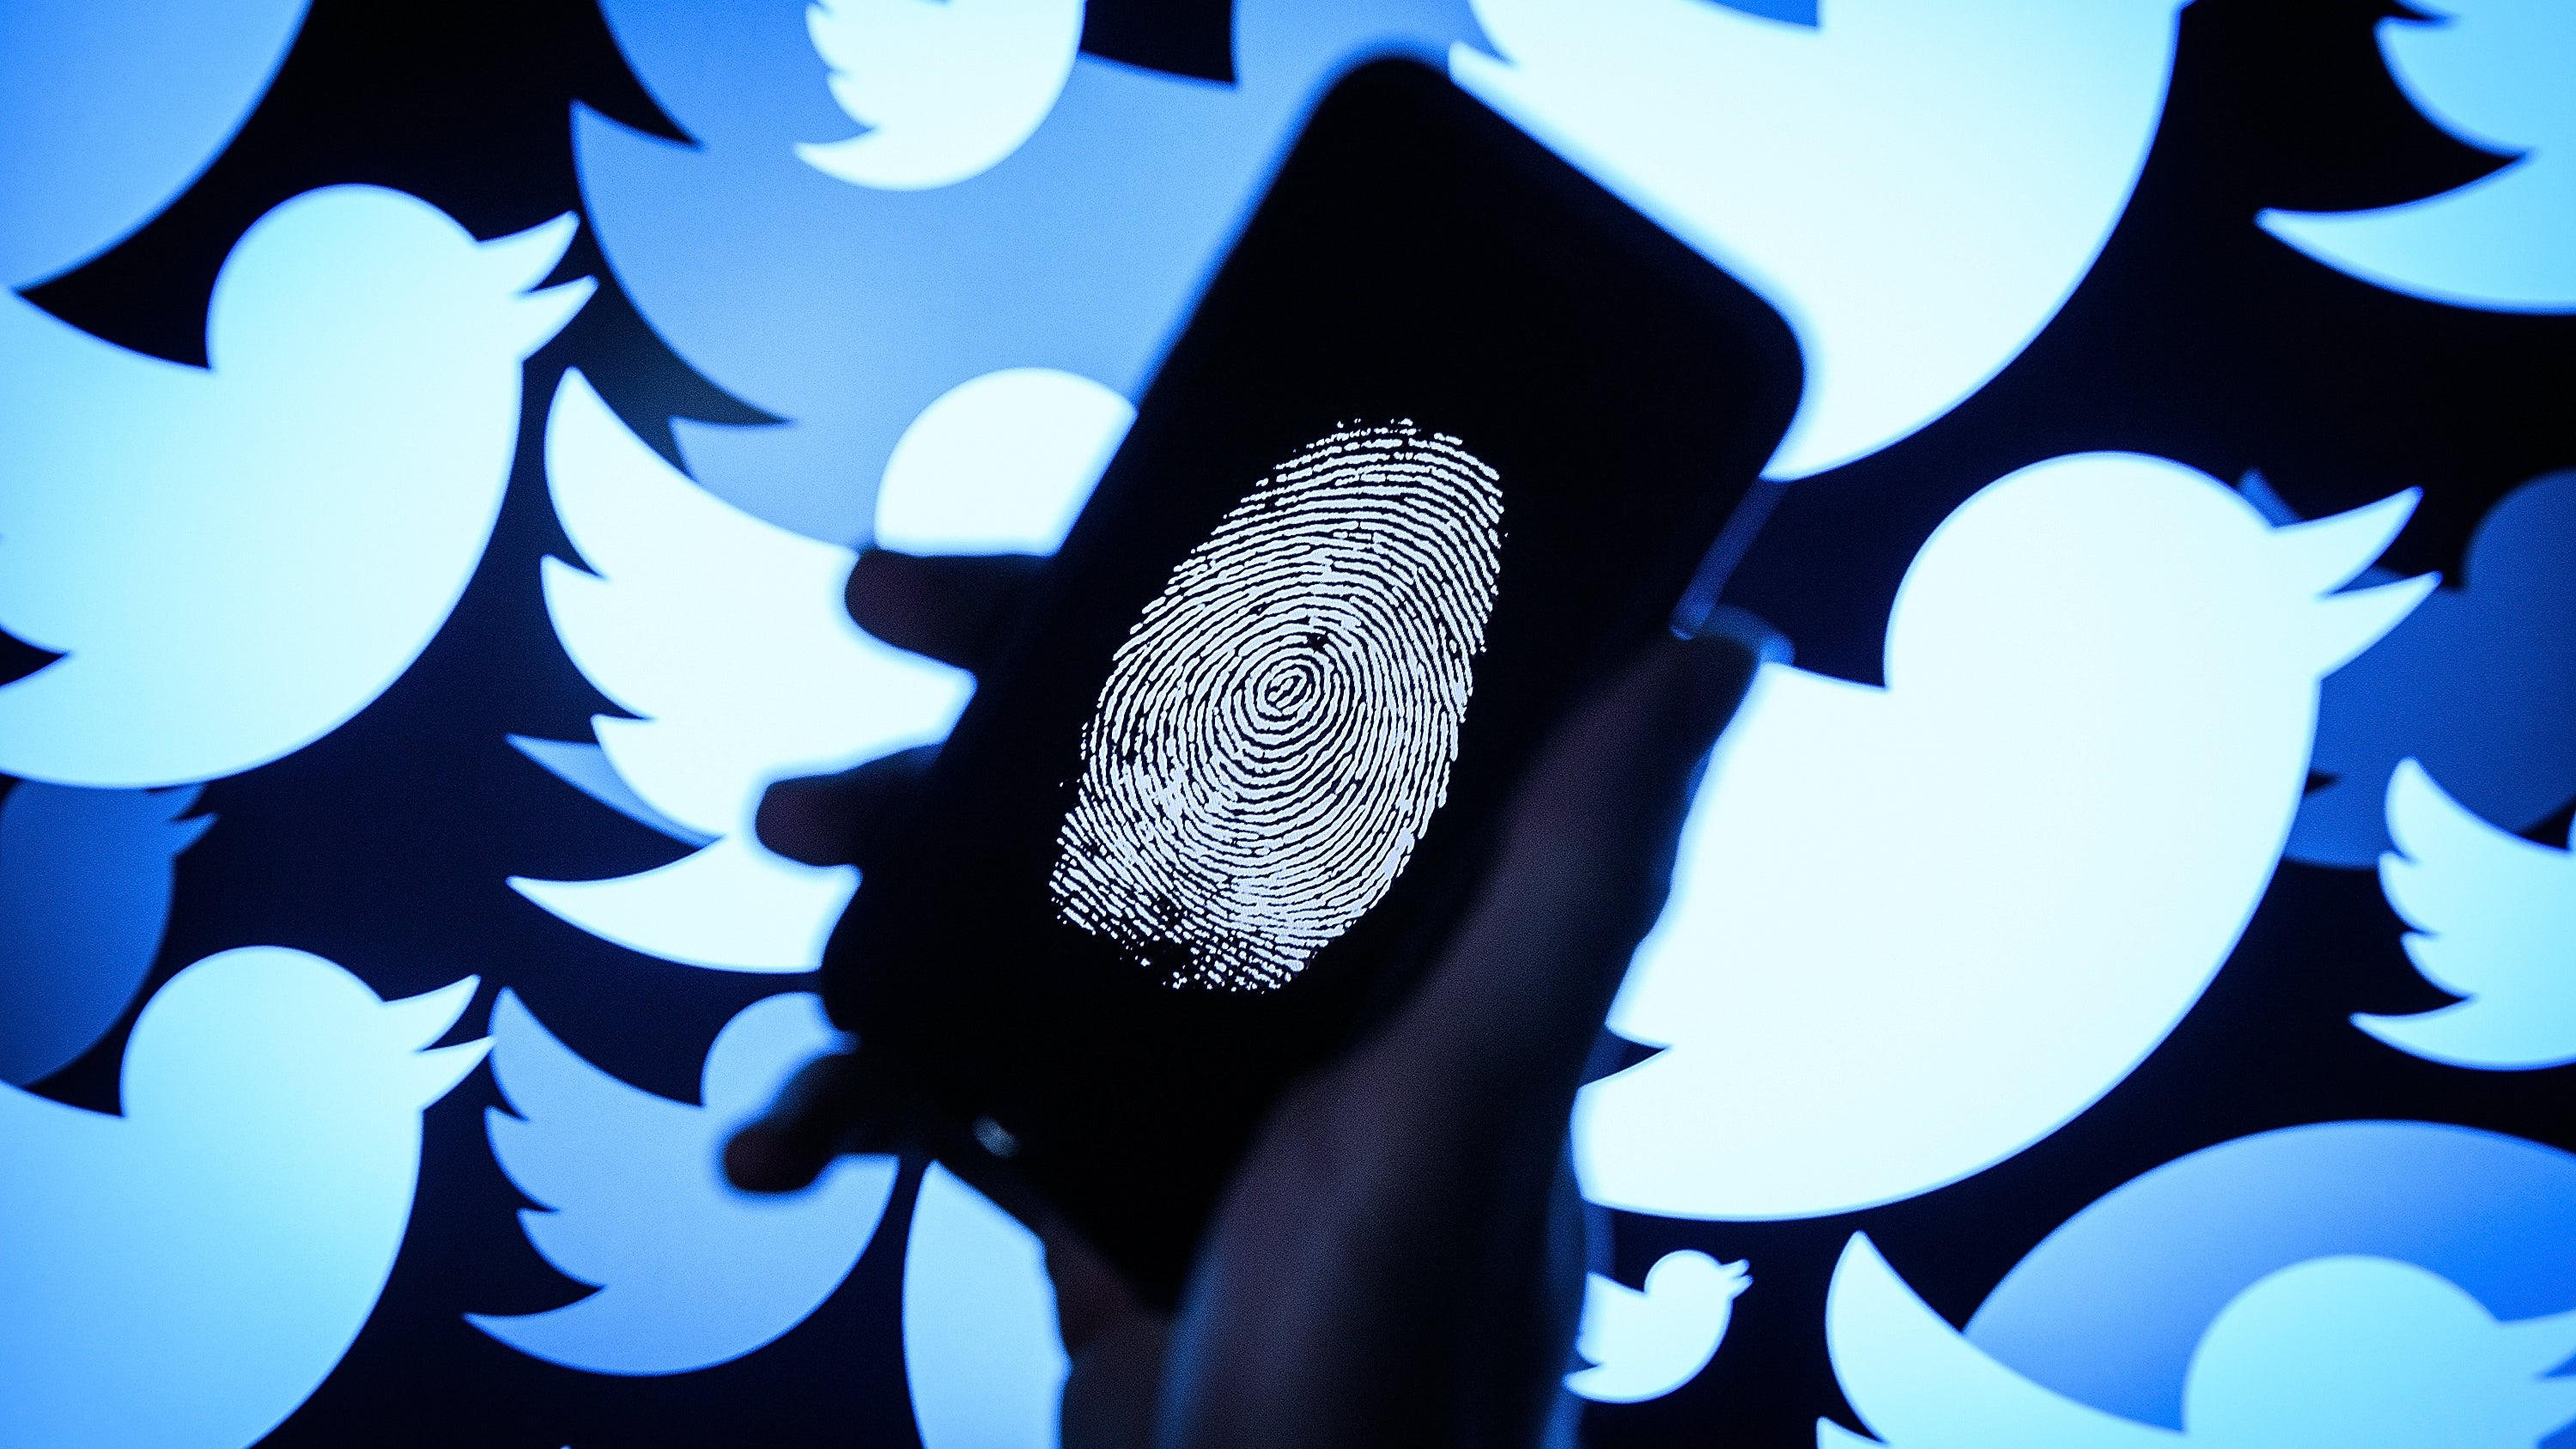 Twitter Is Suspending More Than One Million Accounts Per Day In Latest Purge